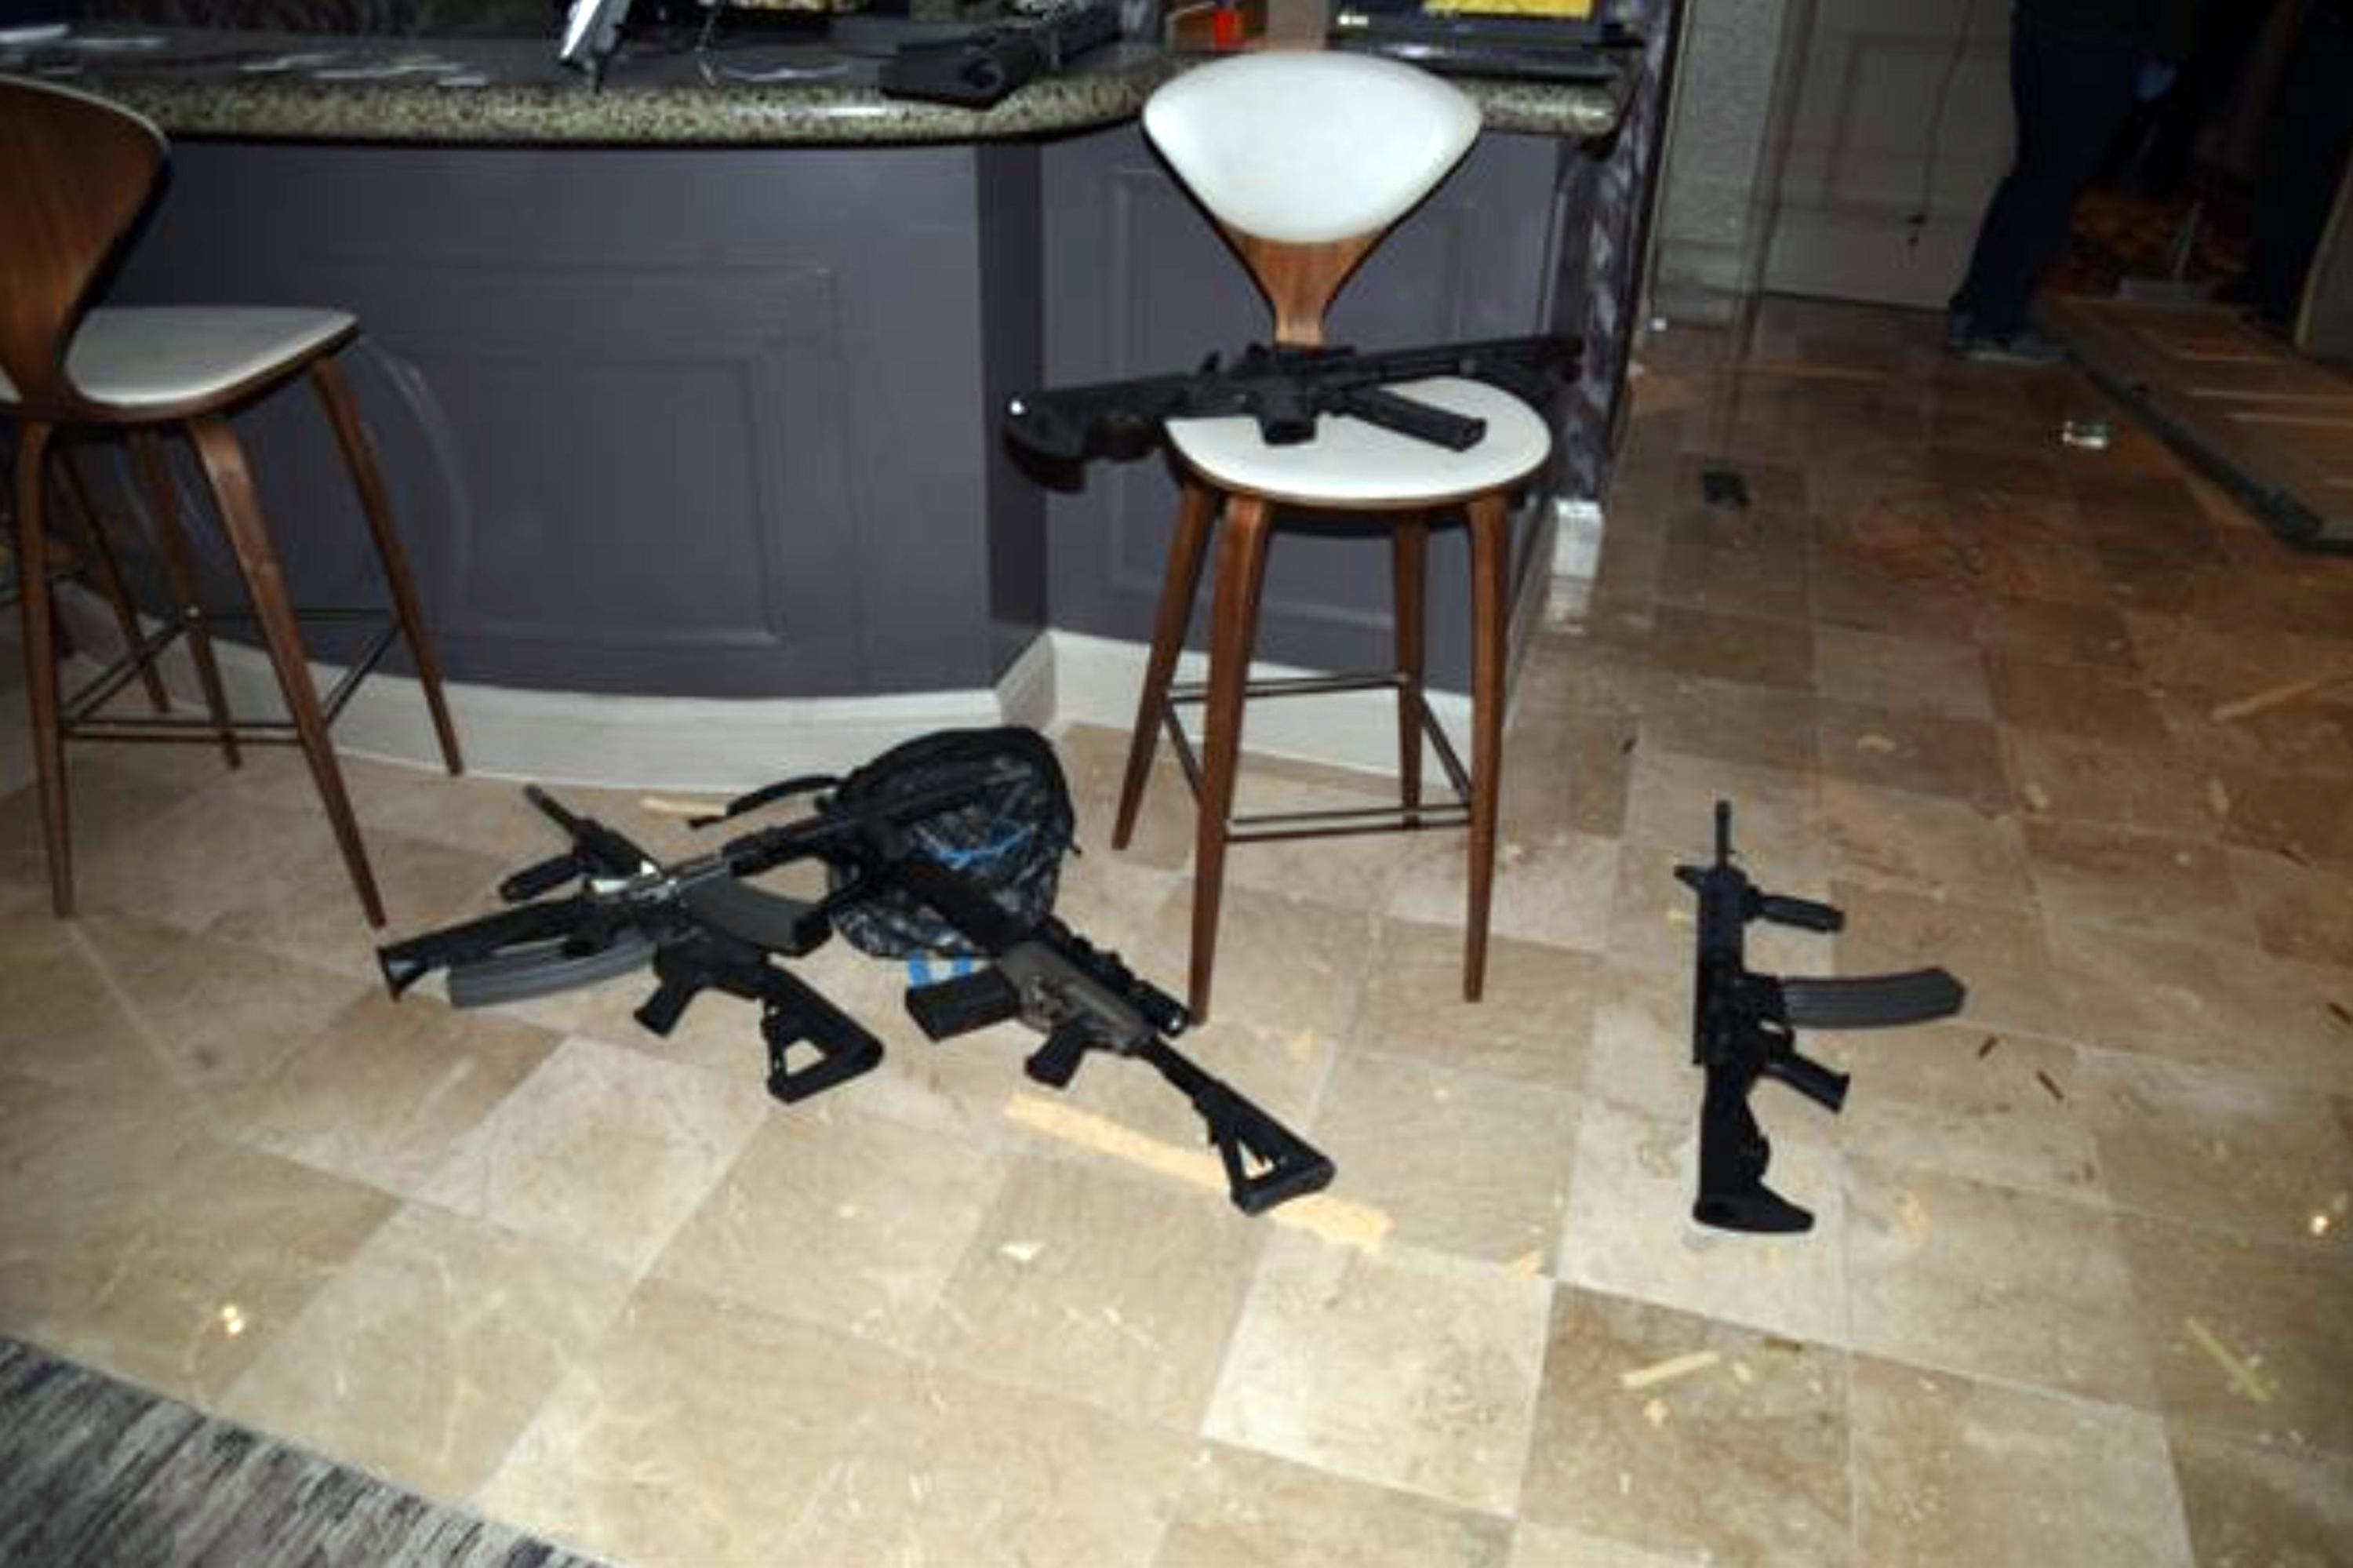 FILE - This October, 2017 file photo released by the Las Vegas Metropolitan Police Department Force Investigation Team Report shows the kitchenette in the hotel room of Las Vegas gunman Stephen Paddock's 32nd floor room of the Mandalay Bay hotel in Las Vegas, an image released as part of a preliminary report by Clark County Sheriff Joe Lombardo on Friday, Jan. 19, 2018, in Las Vegas. The name of a man identified in court documents as a person of interest in the deadliest mass shooting in modern U.S. history was publicly revealed because of a court error. Clark County District Court Judge Elissa Cadish said Tuesday, Jan. 30, 2018, that her staff failed to black out the name in nearly 300 pages of documents released to news organizations including The Associated Press and Las Vegas Review-Journal. (Las Vegas Metropolitan Police Department via AP, File)